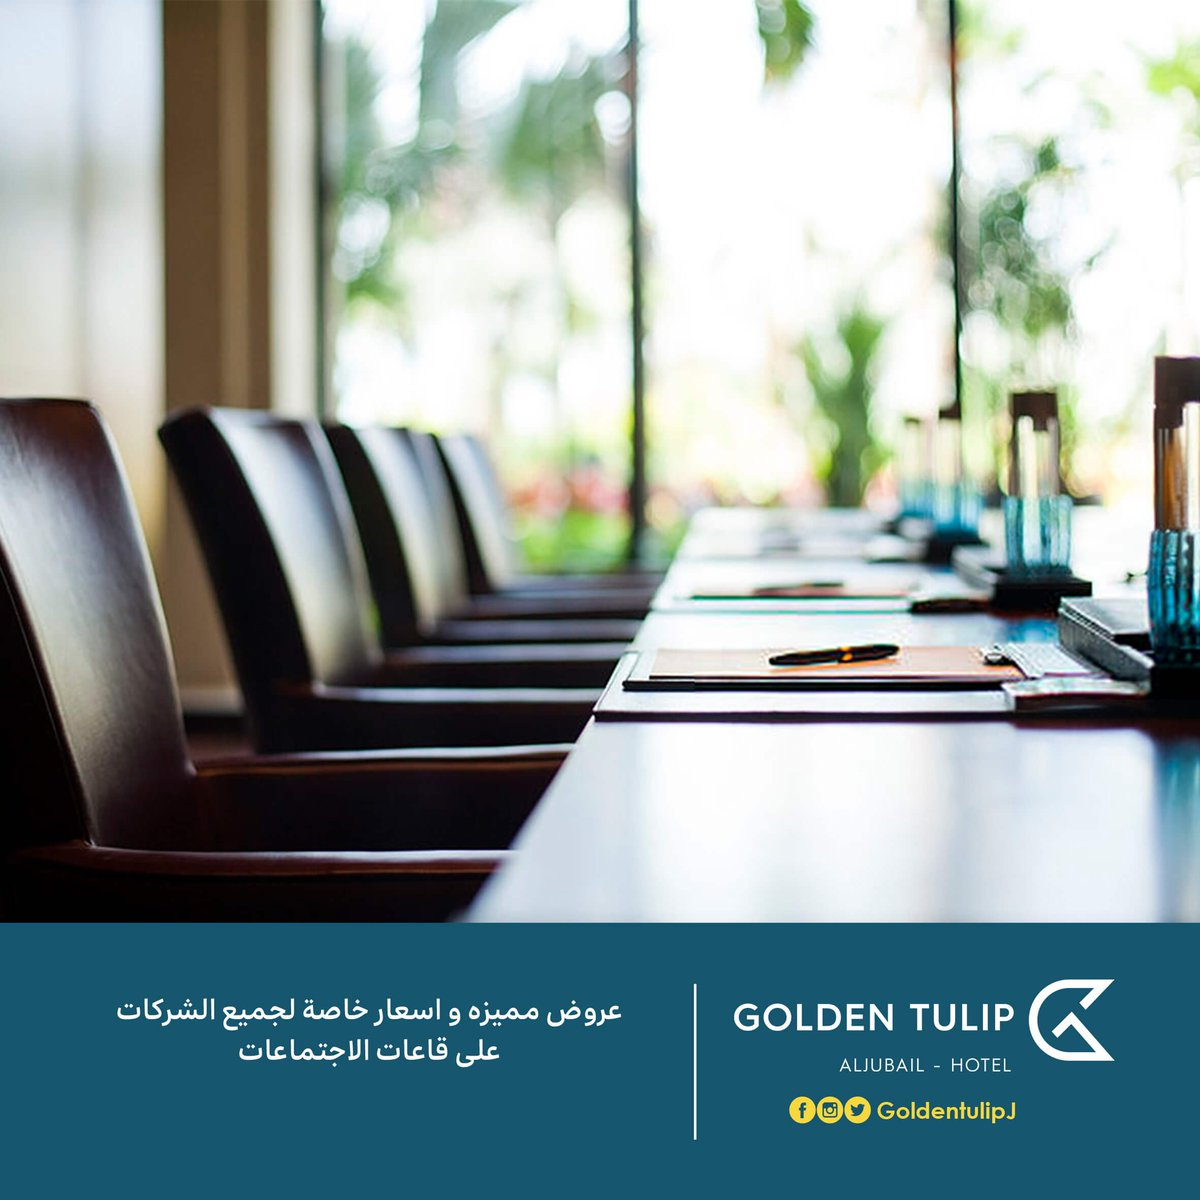 Special offers and special rates for all companies  (coffee break 50-75-100) coffee Break + Lunch 120 2 Coffee break + lunch 140 – coffee break throughout the day 160 - Reservation room only 500 riyals  #فنادق_الشرقية #الجبيل #الجبيل_الان  #الجبيل_الصناعية #فنادق_الجبيل #شركات https://t.co/n2XzpWFpxb